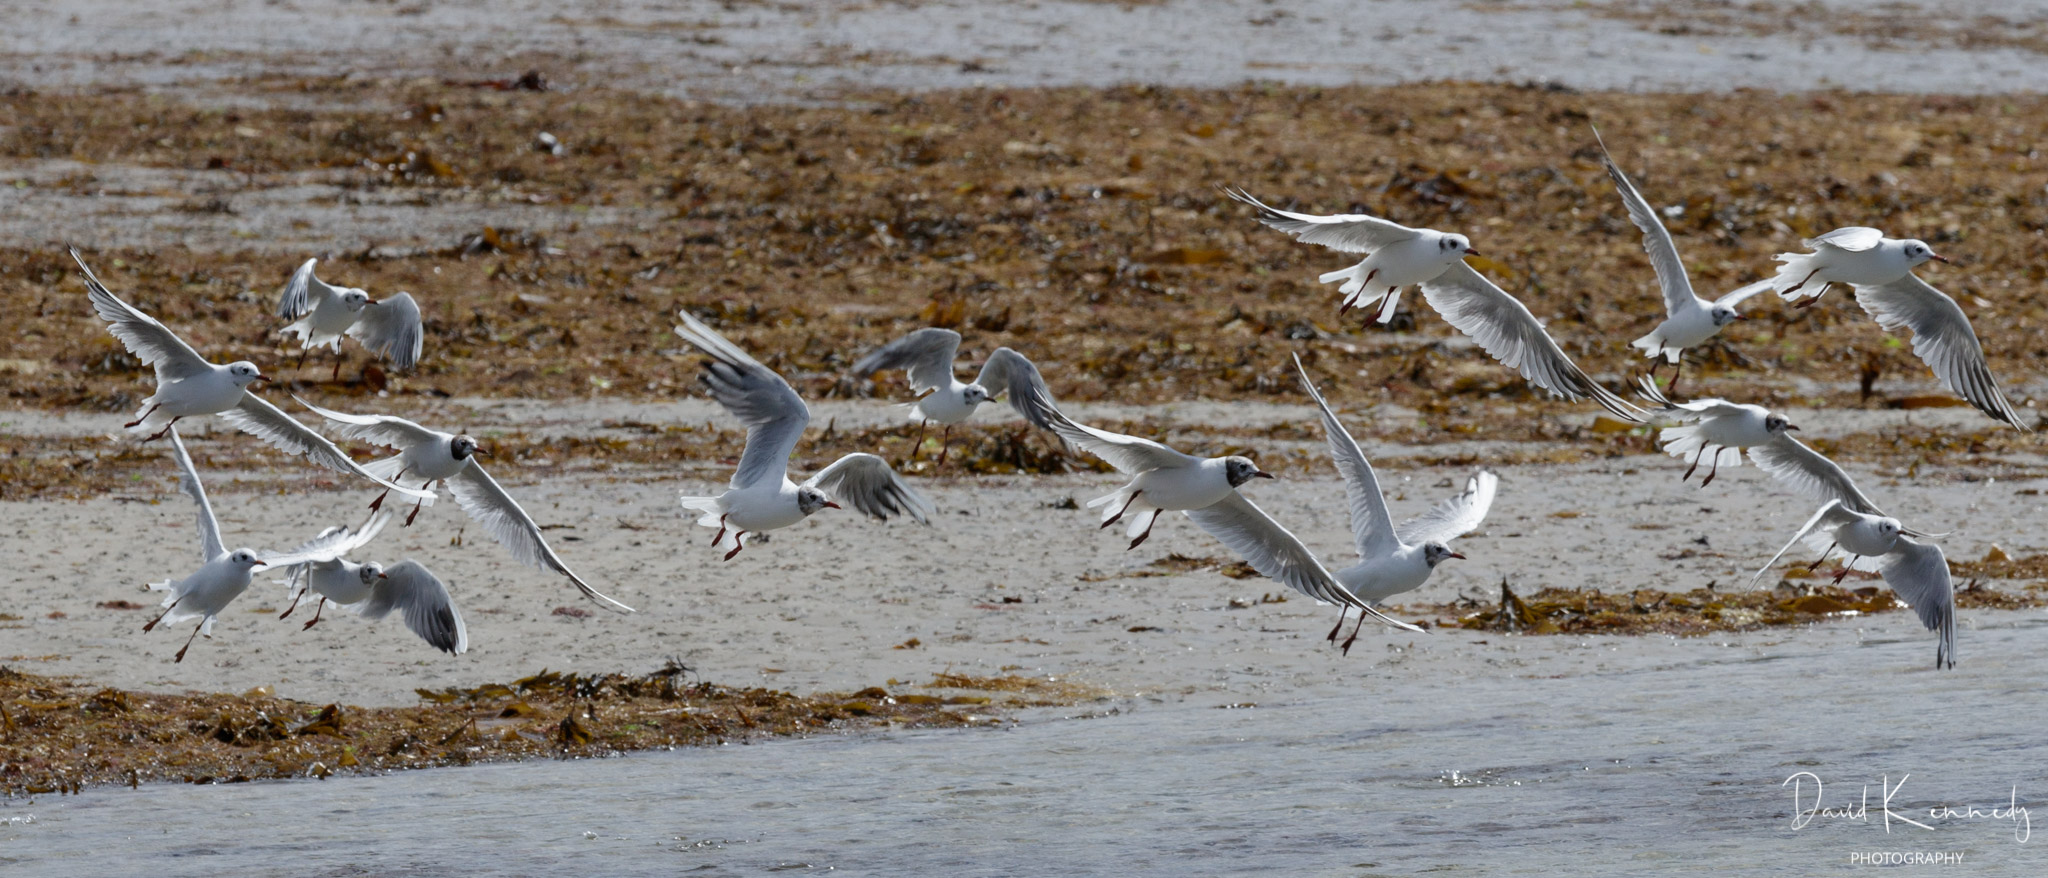 A small flock of black headed gulls flying above water with beach and seaweed in background